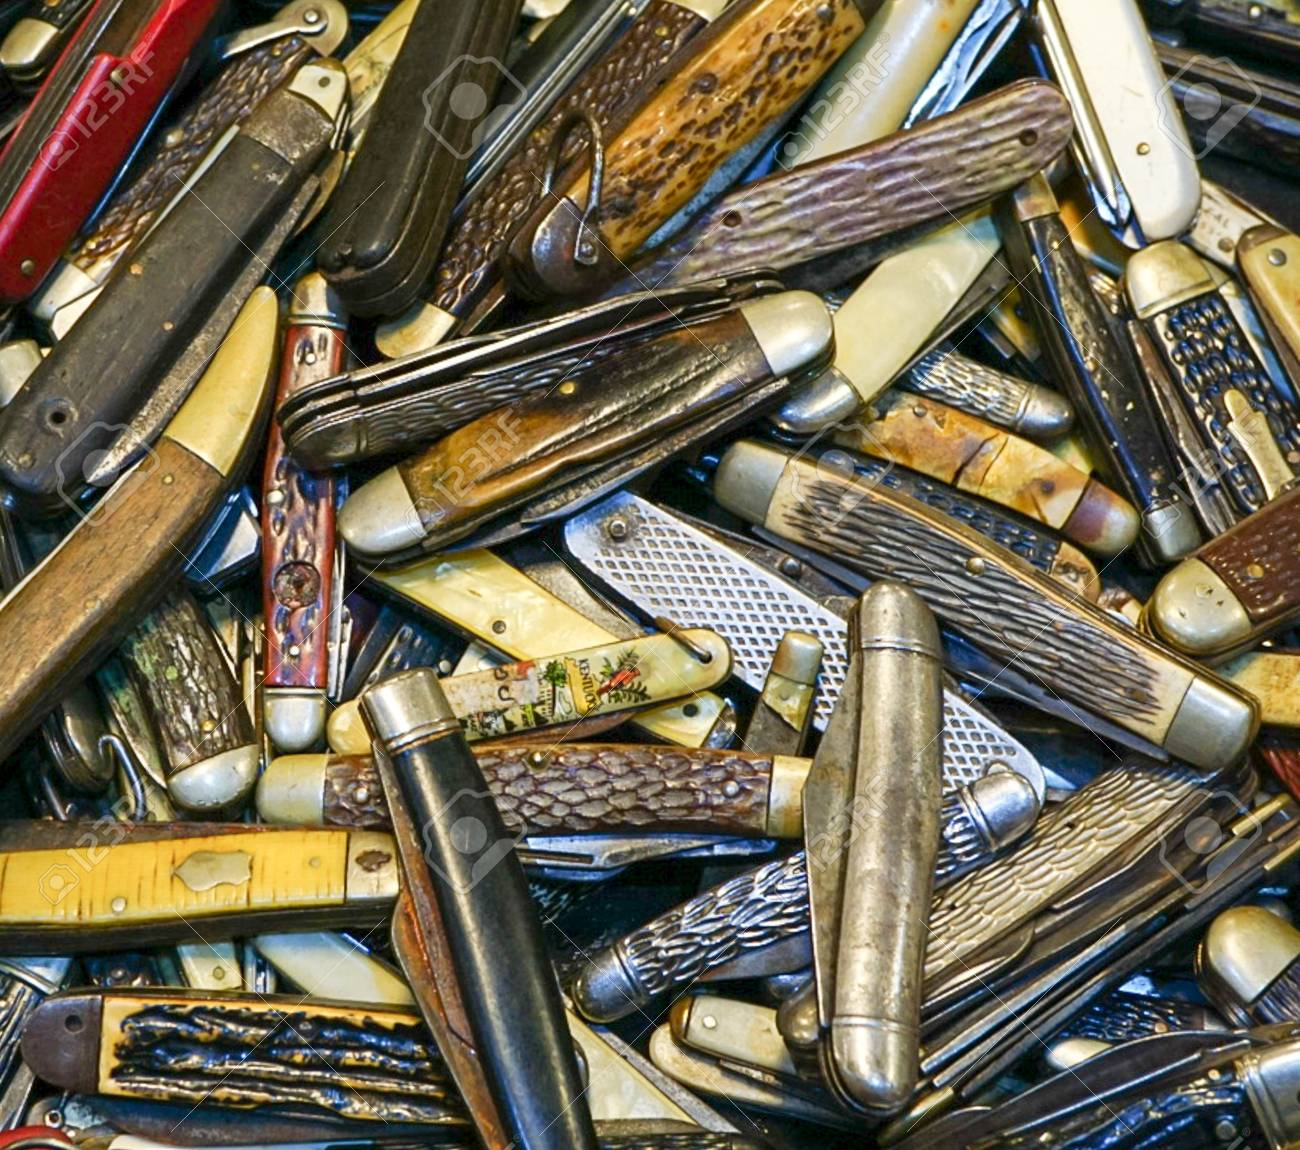 An up close view of a collection of old vintage pocket knives